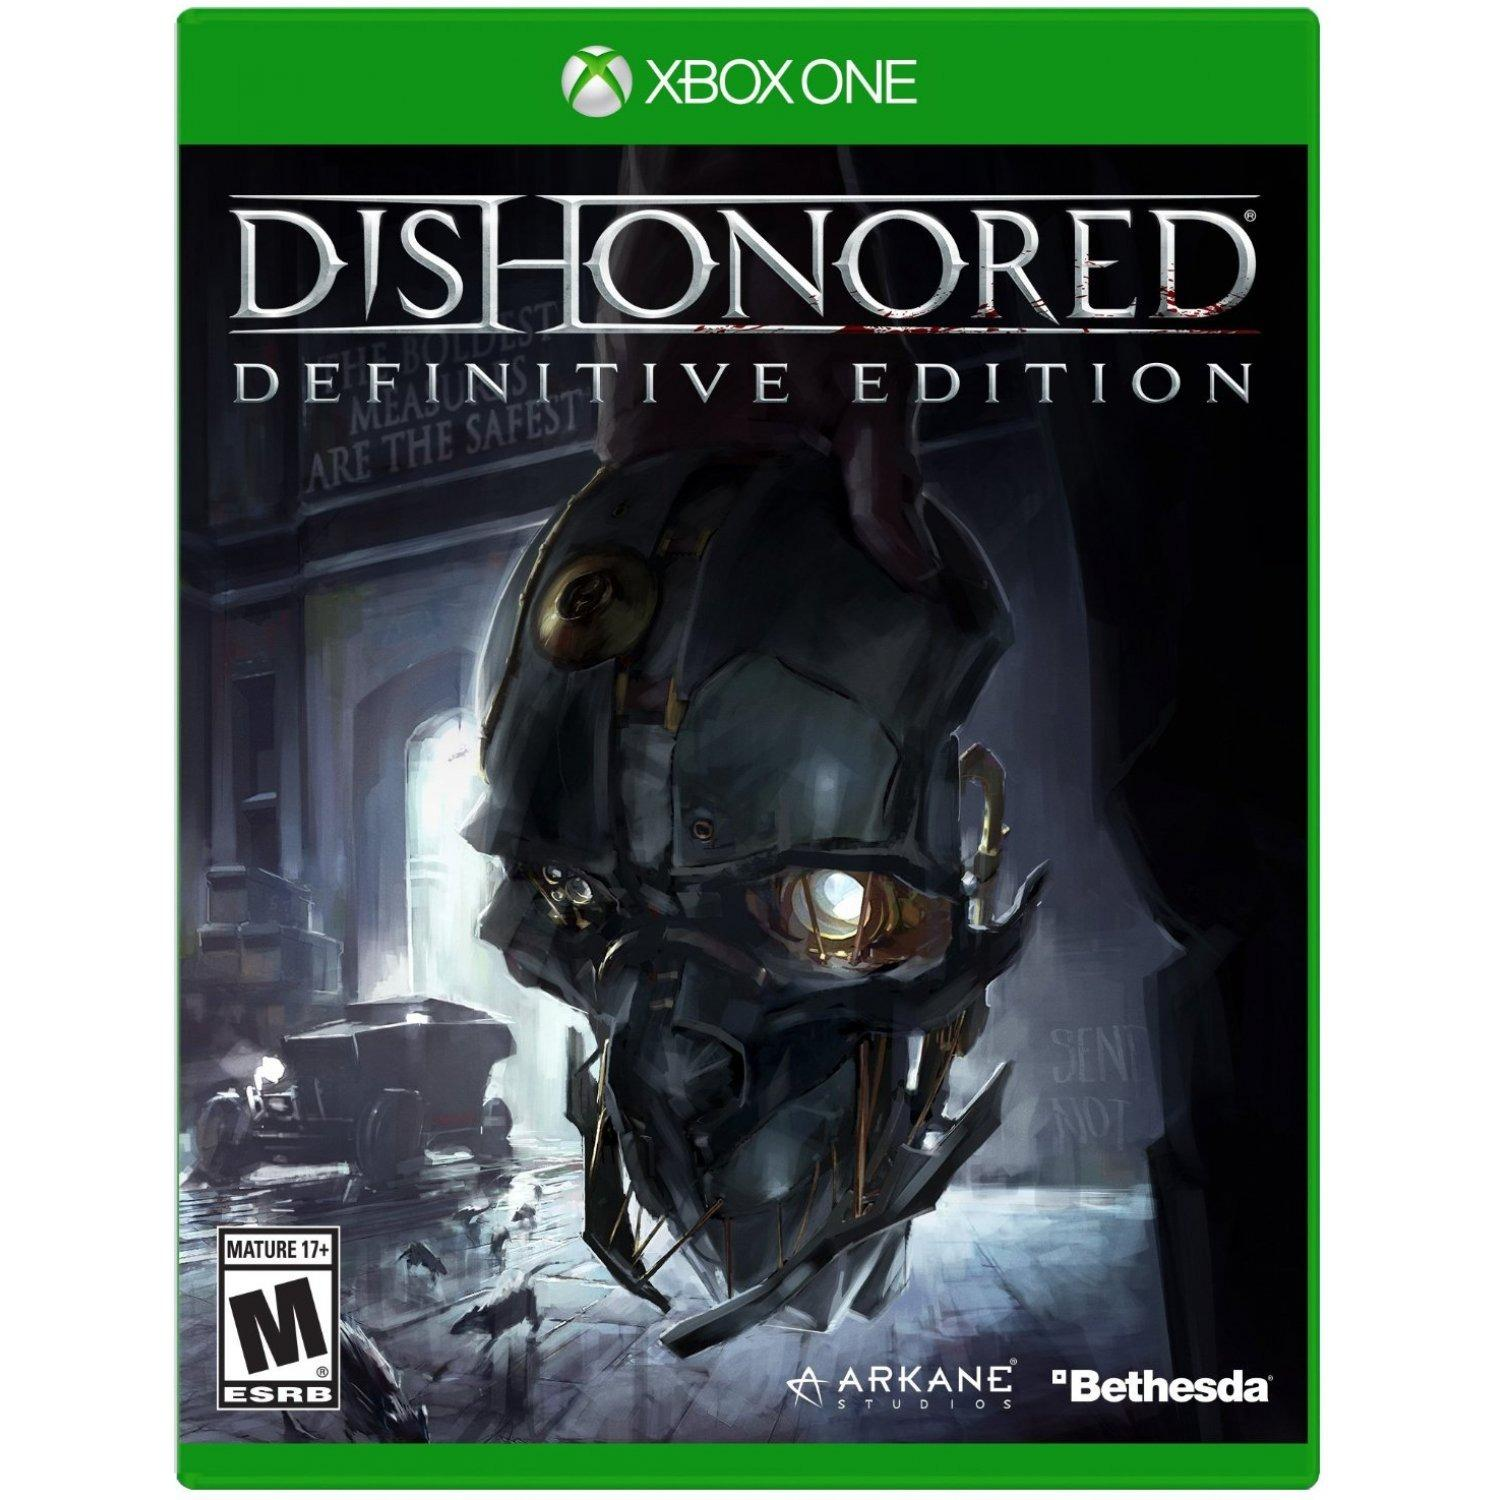 Xbox One Dishonored Definitive Edition Review